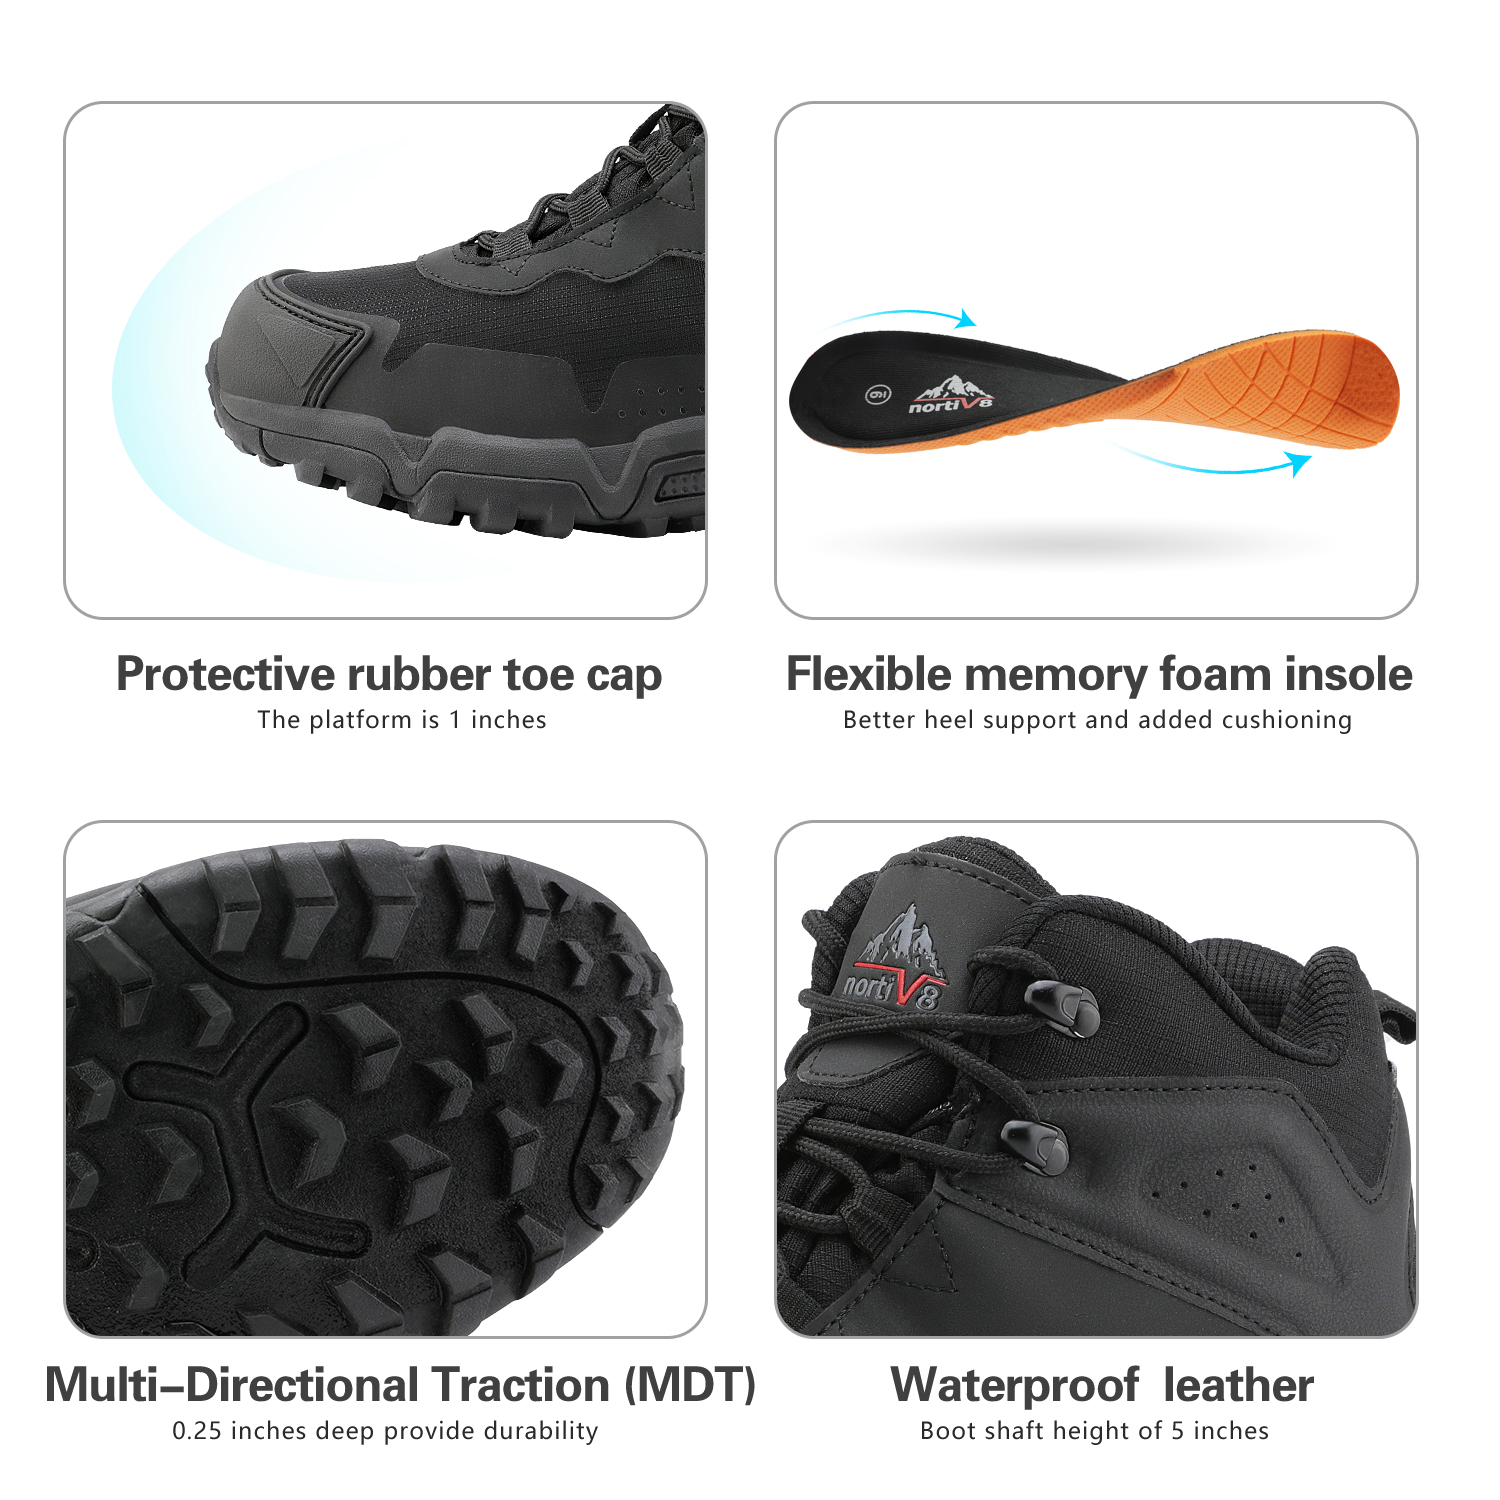 NORTIV-8-Men-039-s-Ankle-Waterproof-Hiking-Boots-Lightweight-Backpacking-Work-Shoes thumbnail 22